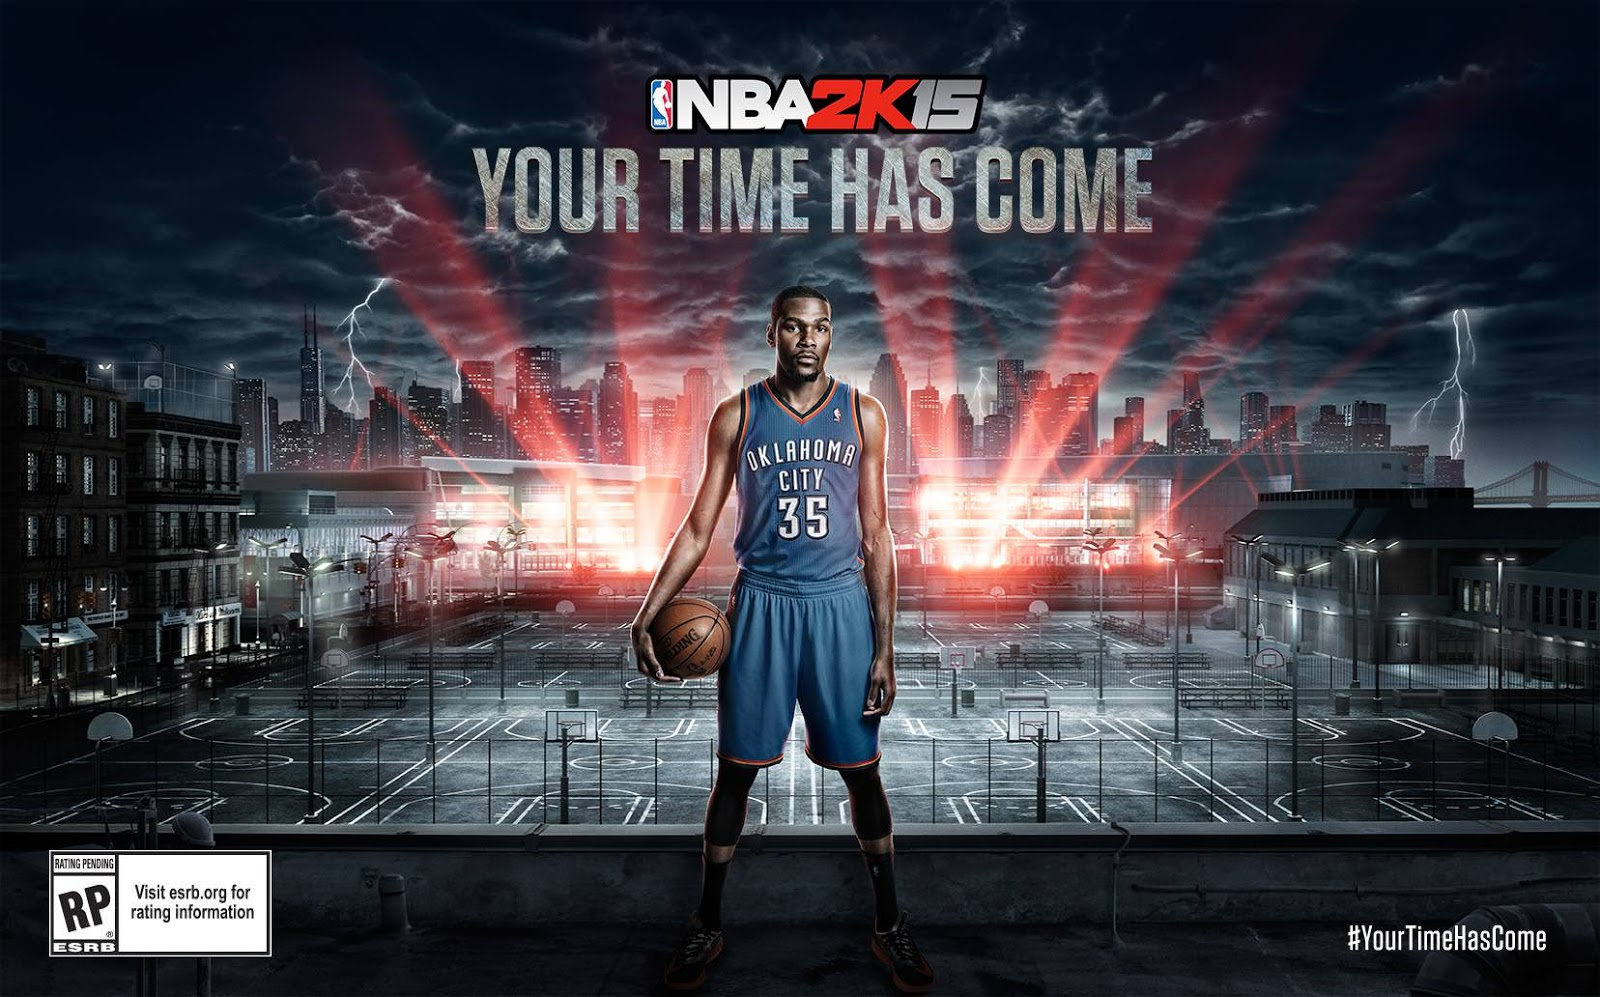 Kevin Durant announced NBA 2k15 Cover Athlete